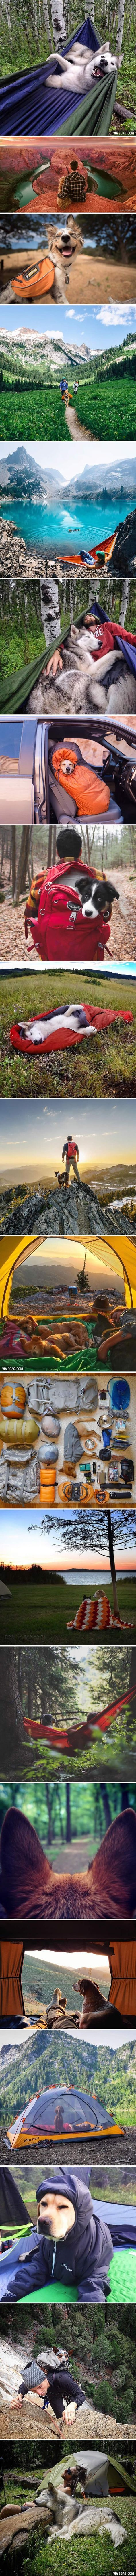 Going Camping With Your Dog – Double your outdoor pleasure by going camping with your dog, browse this page for some dog camping images!